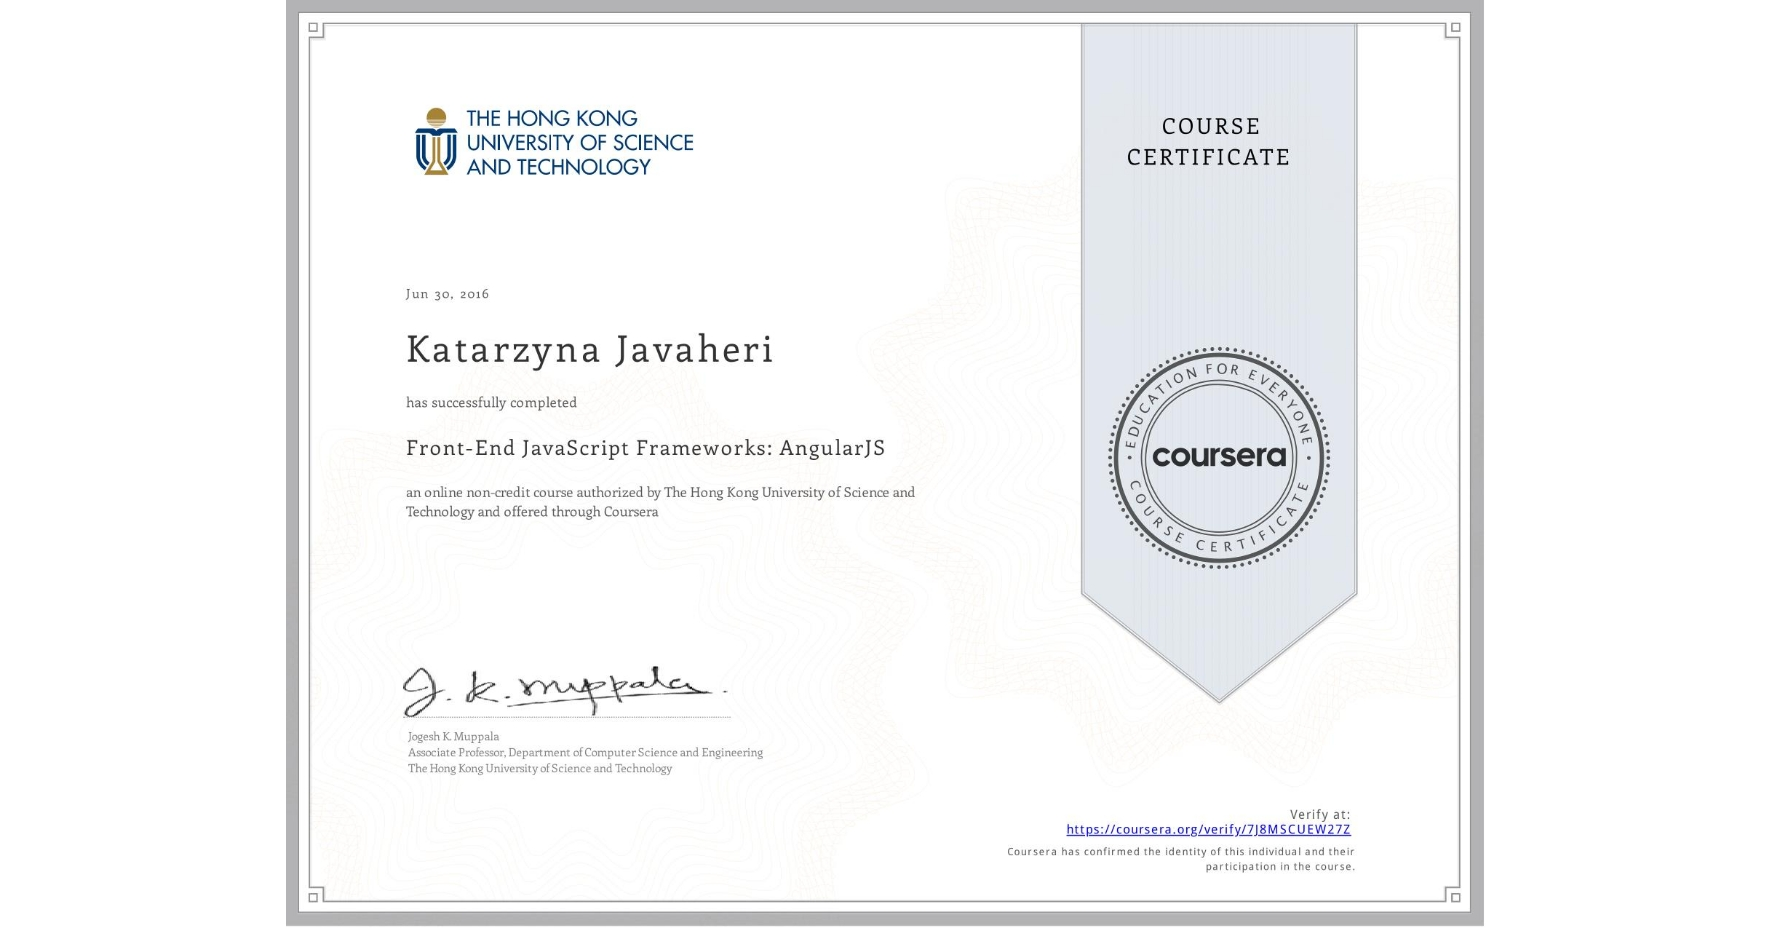 View certificate for Katarzyna Javaheri, Front-End JavaScript Frameworks: AngularJS, an online non-credit course authorized by The Hong Kong University of Science and Technology and offered through Coursera